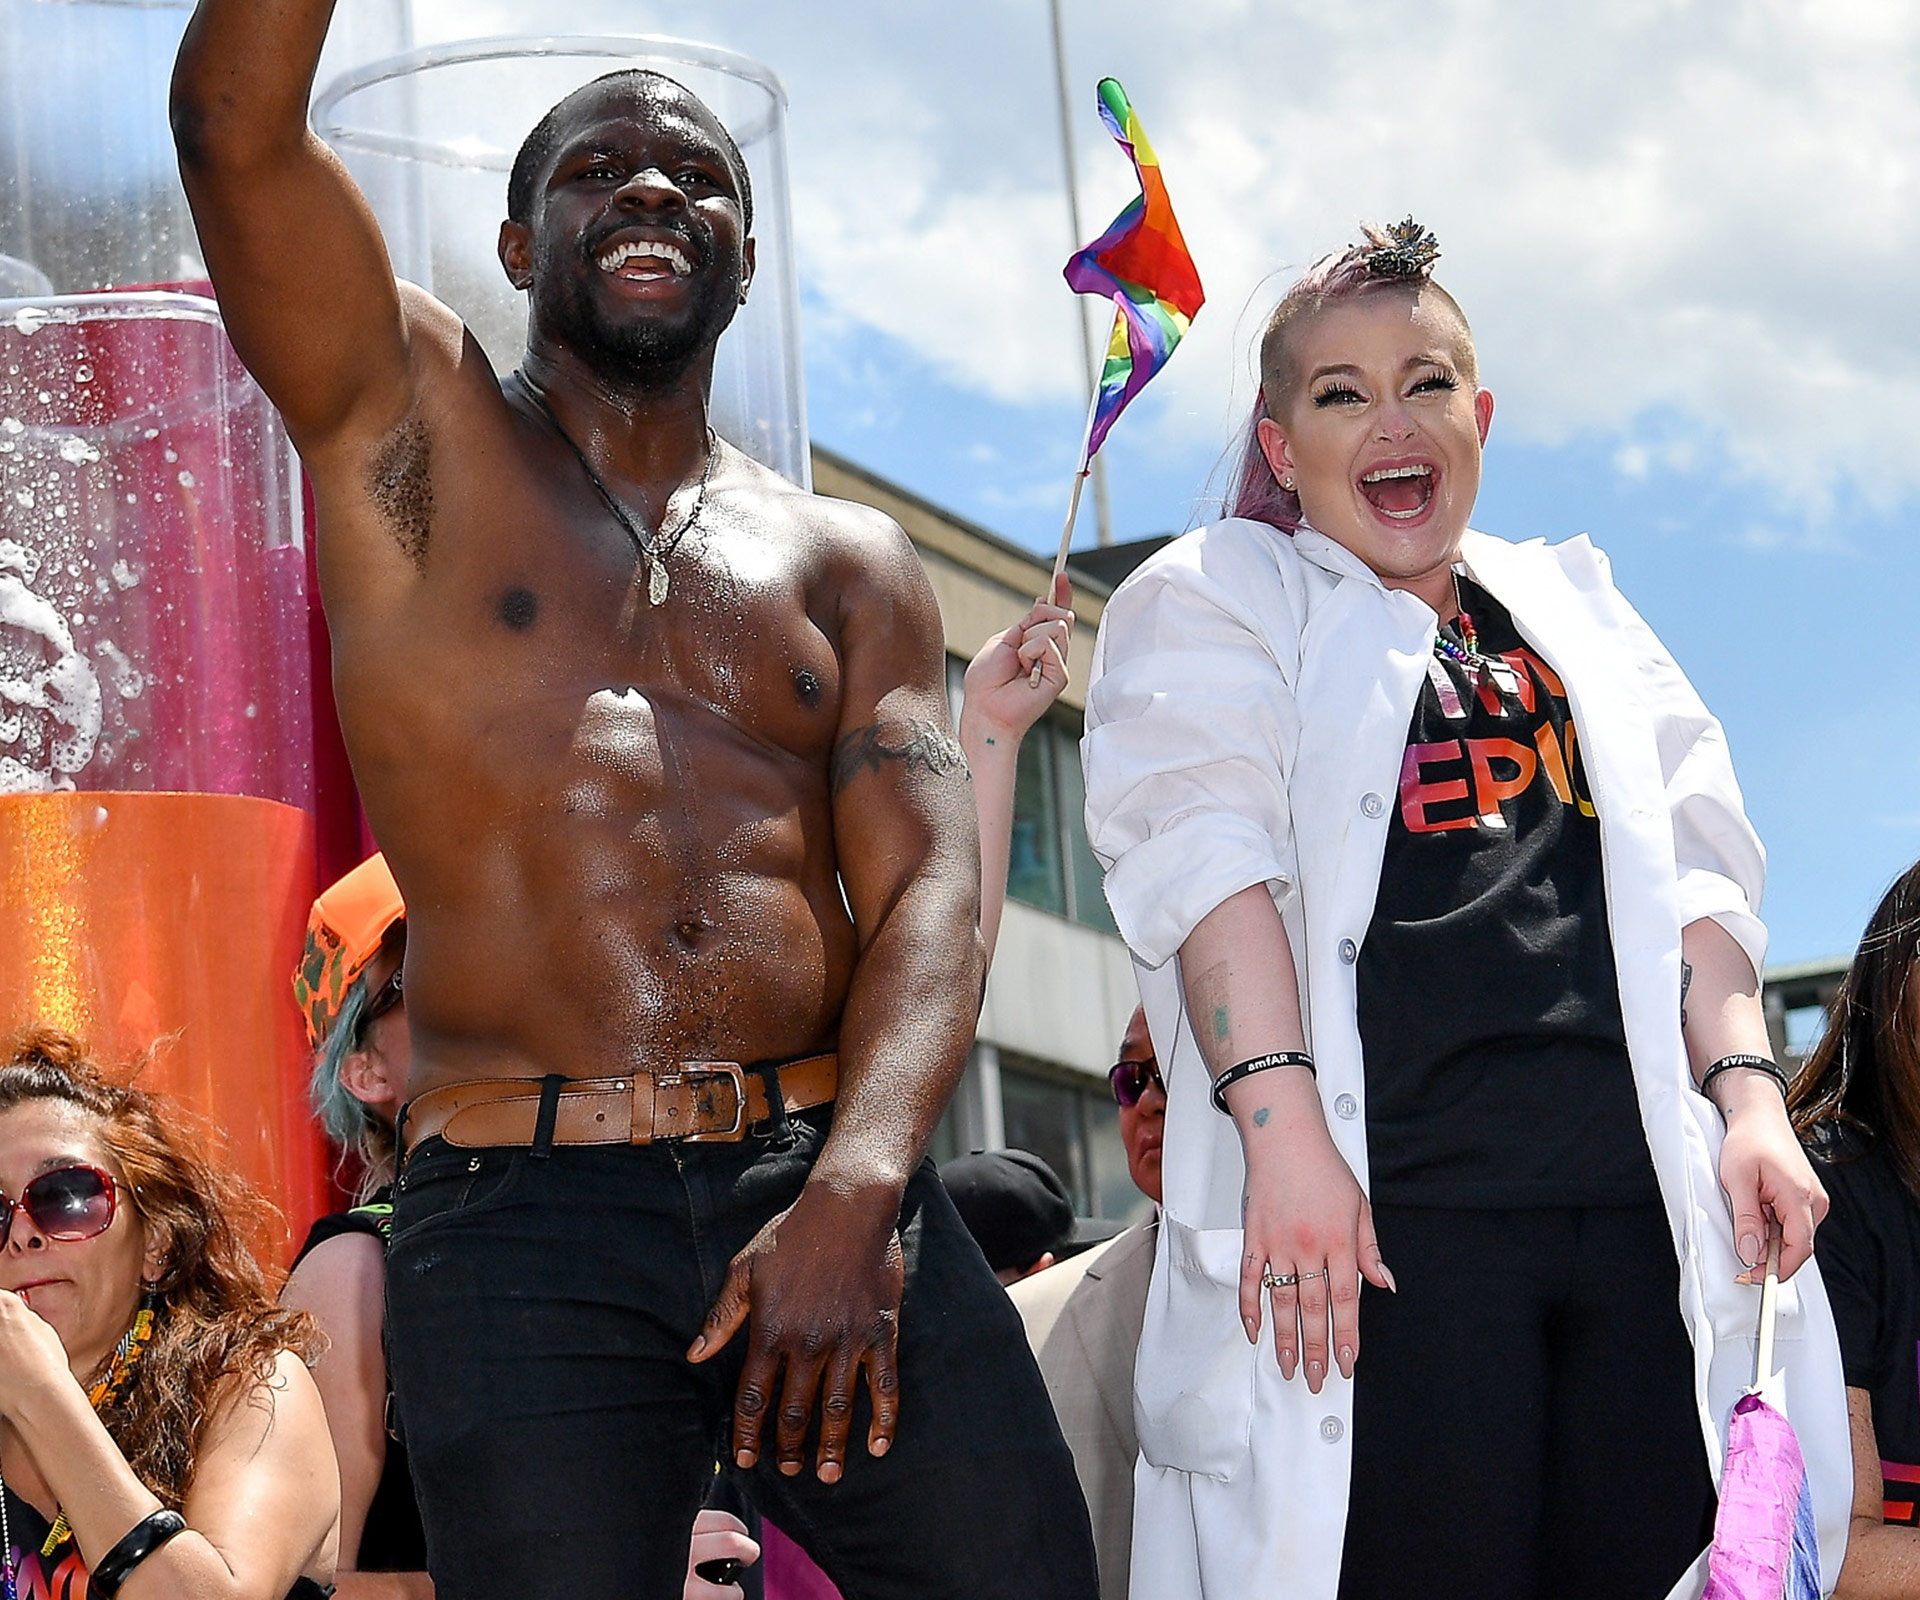 Kelly Osbourne Blames Starbucks for Forcing Her to Pee Herself During Pride